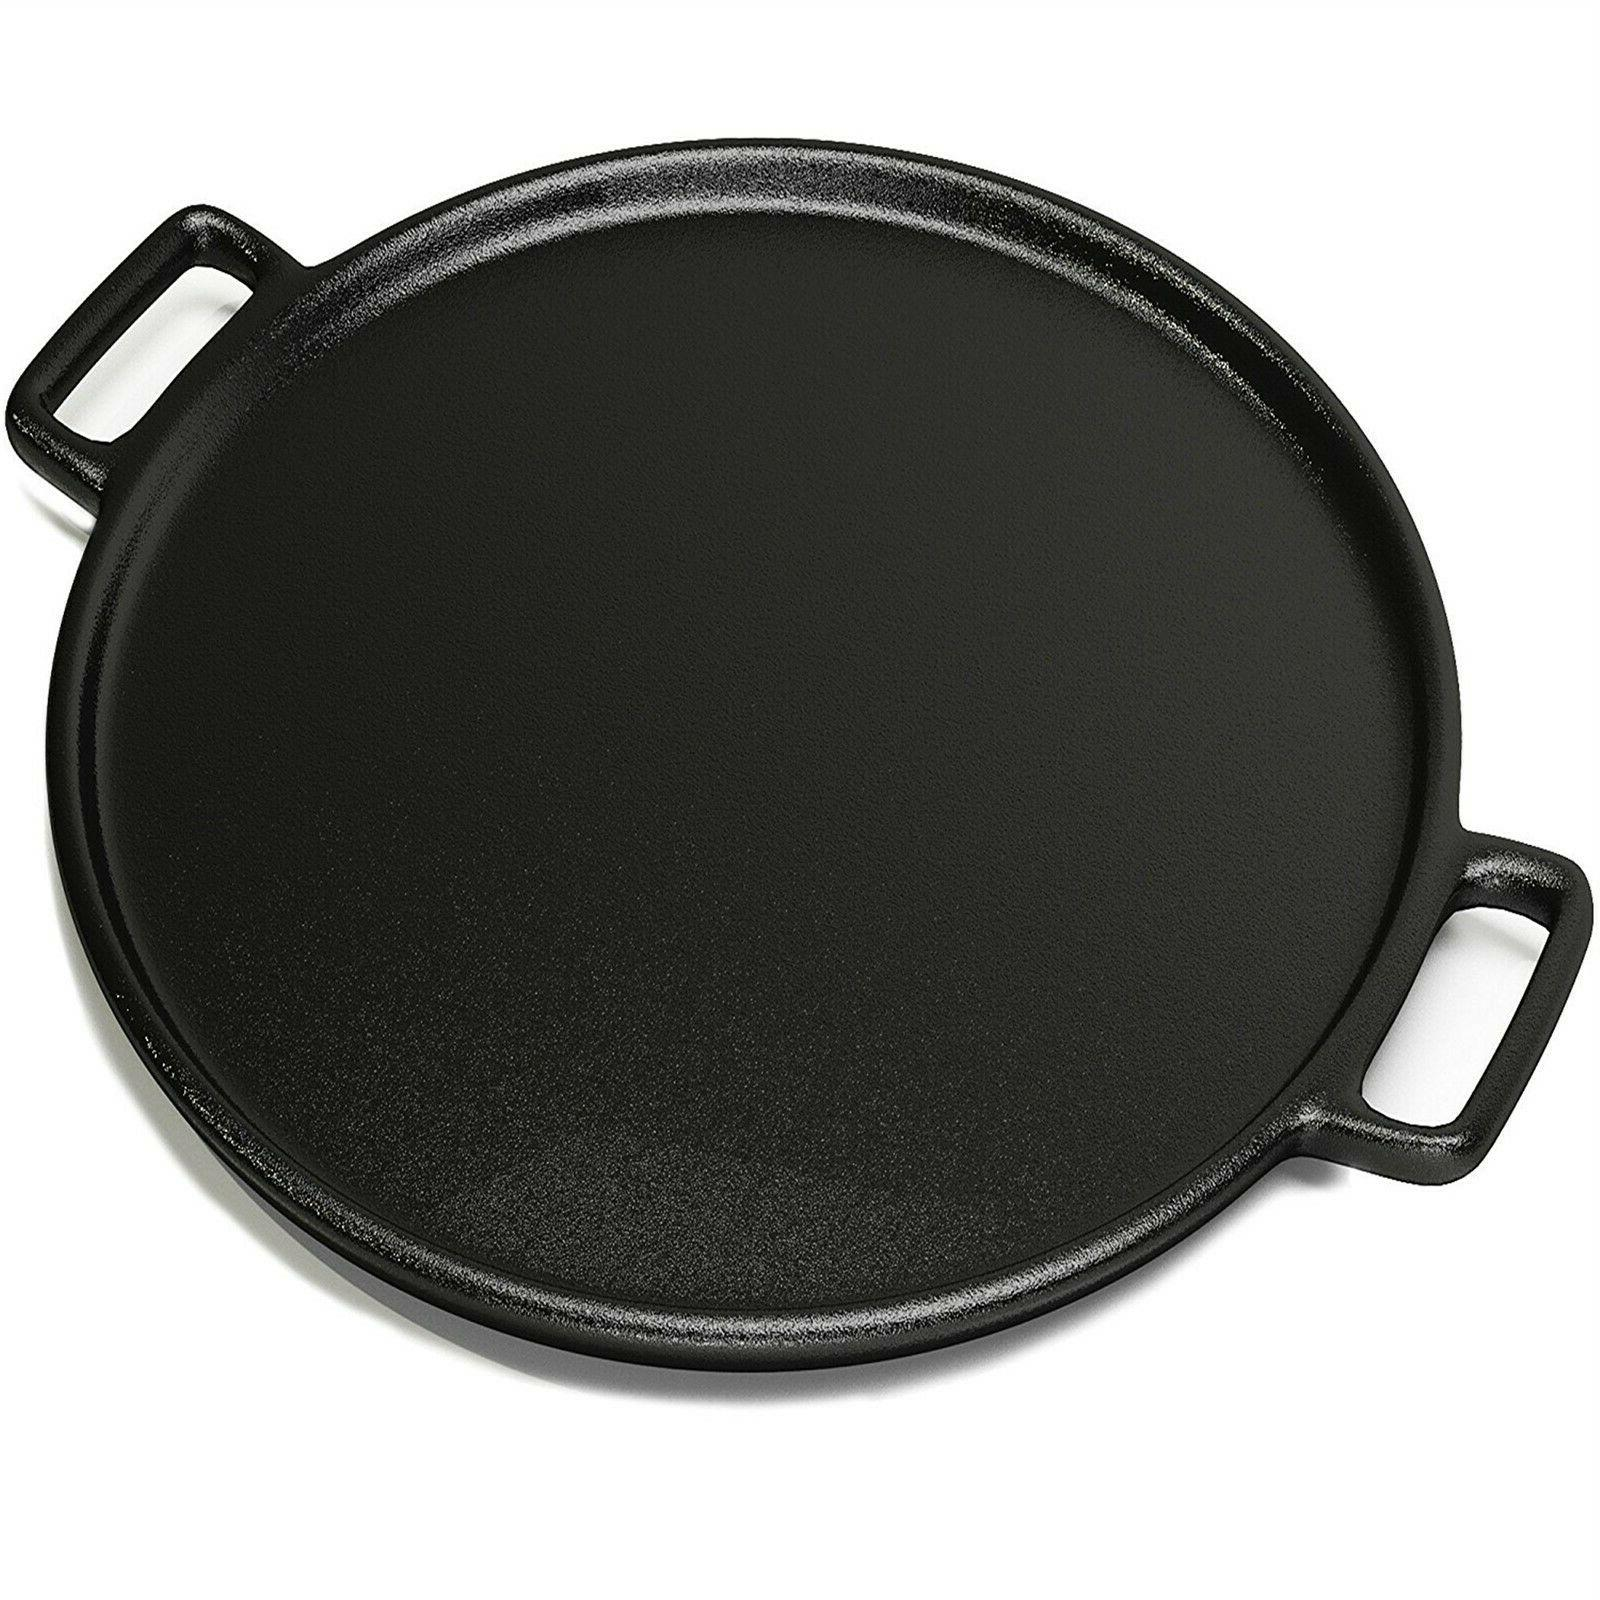 14 inch cast iron pizza pan skillet